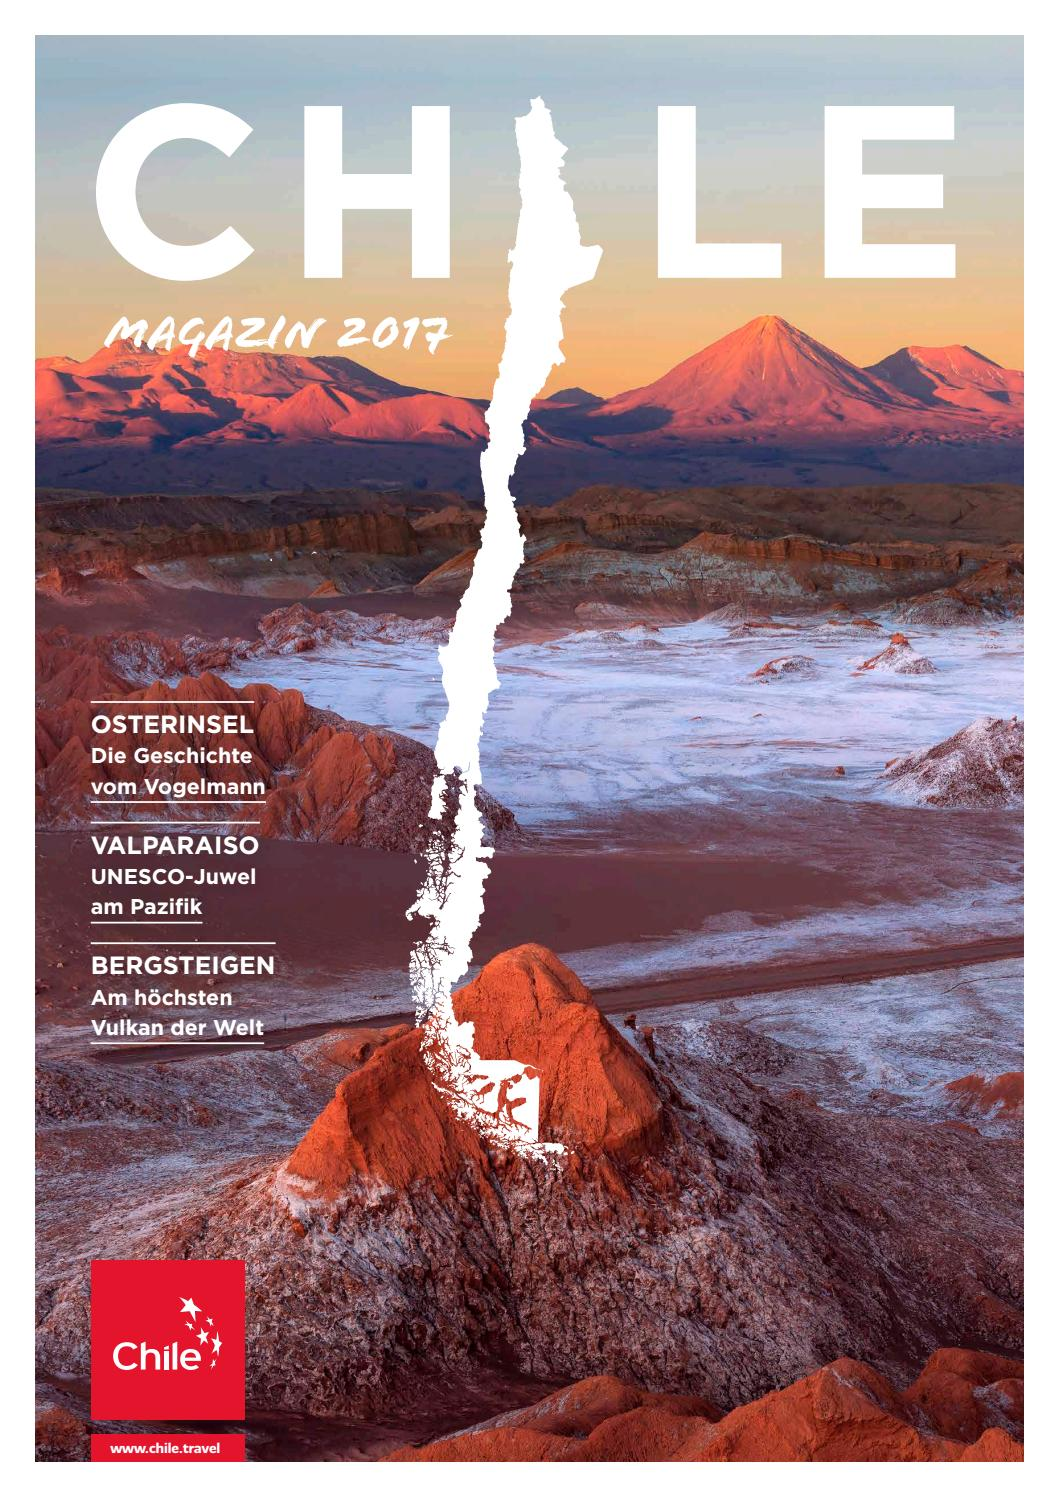 Chilenische Küche Wien Chile Magazin 2017 By 7o7 Marketing - Issuu